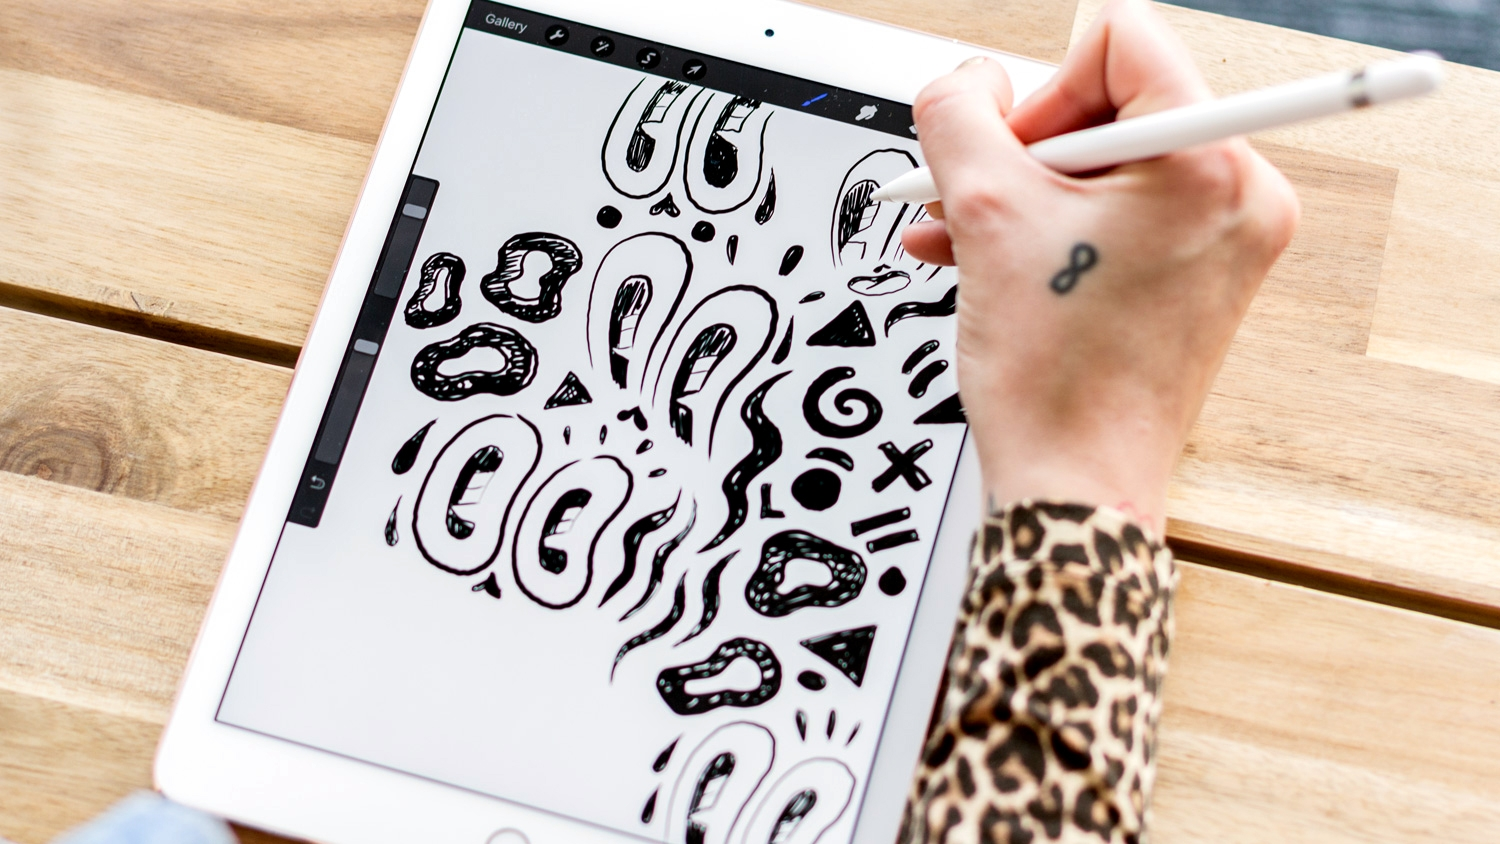 Apple Ipad Pro 9 7 Inch Review For Artists And Designers